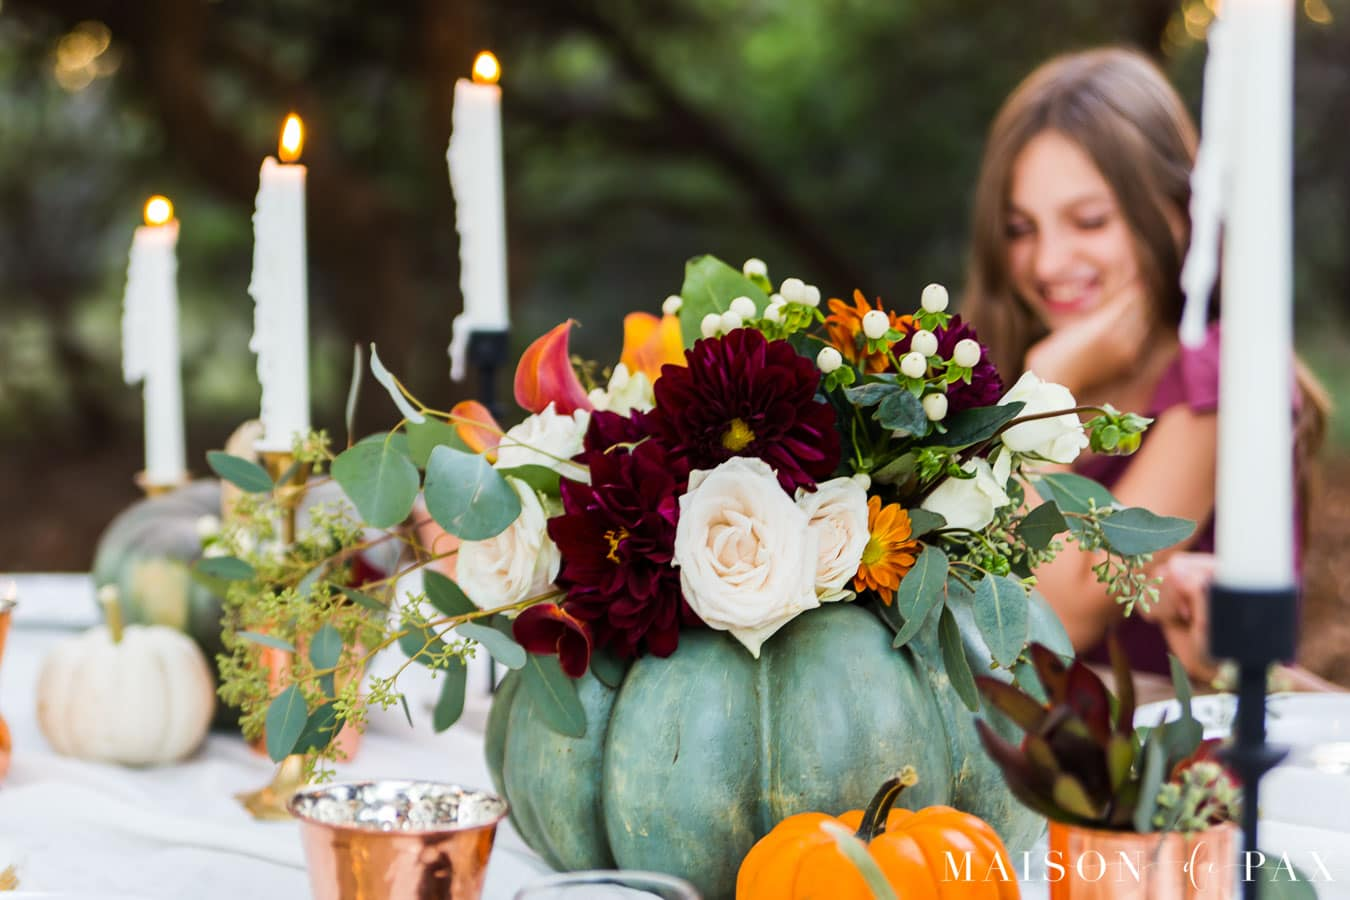 pumpkin vase with fall florals for center of Thanksgiving table | Maison de Pax